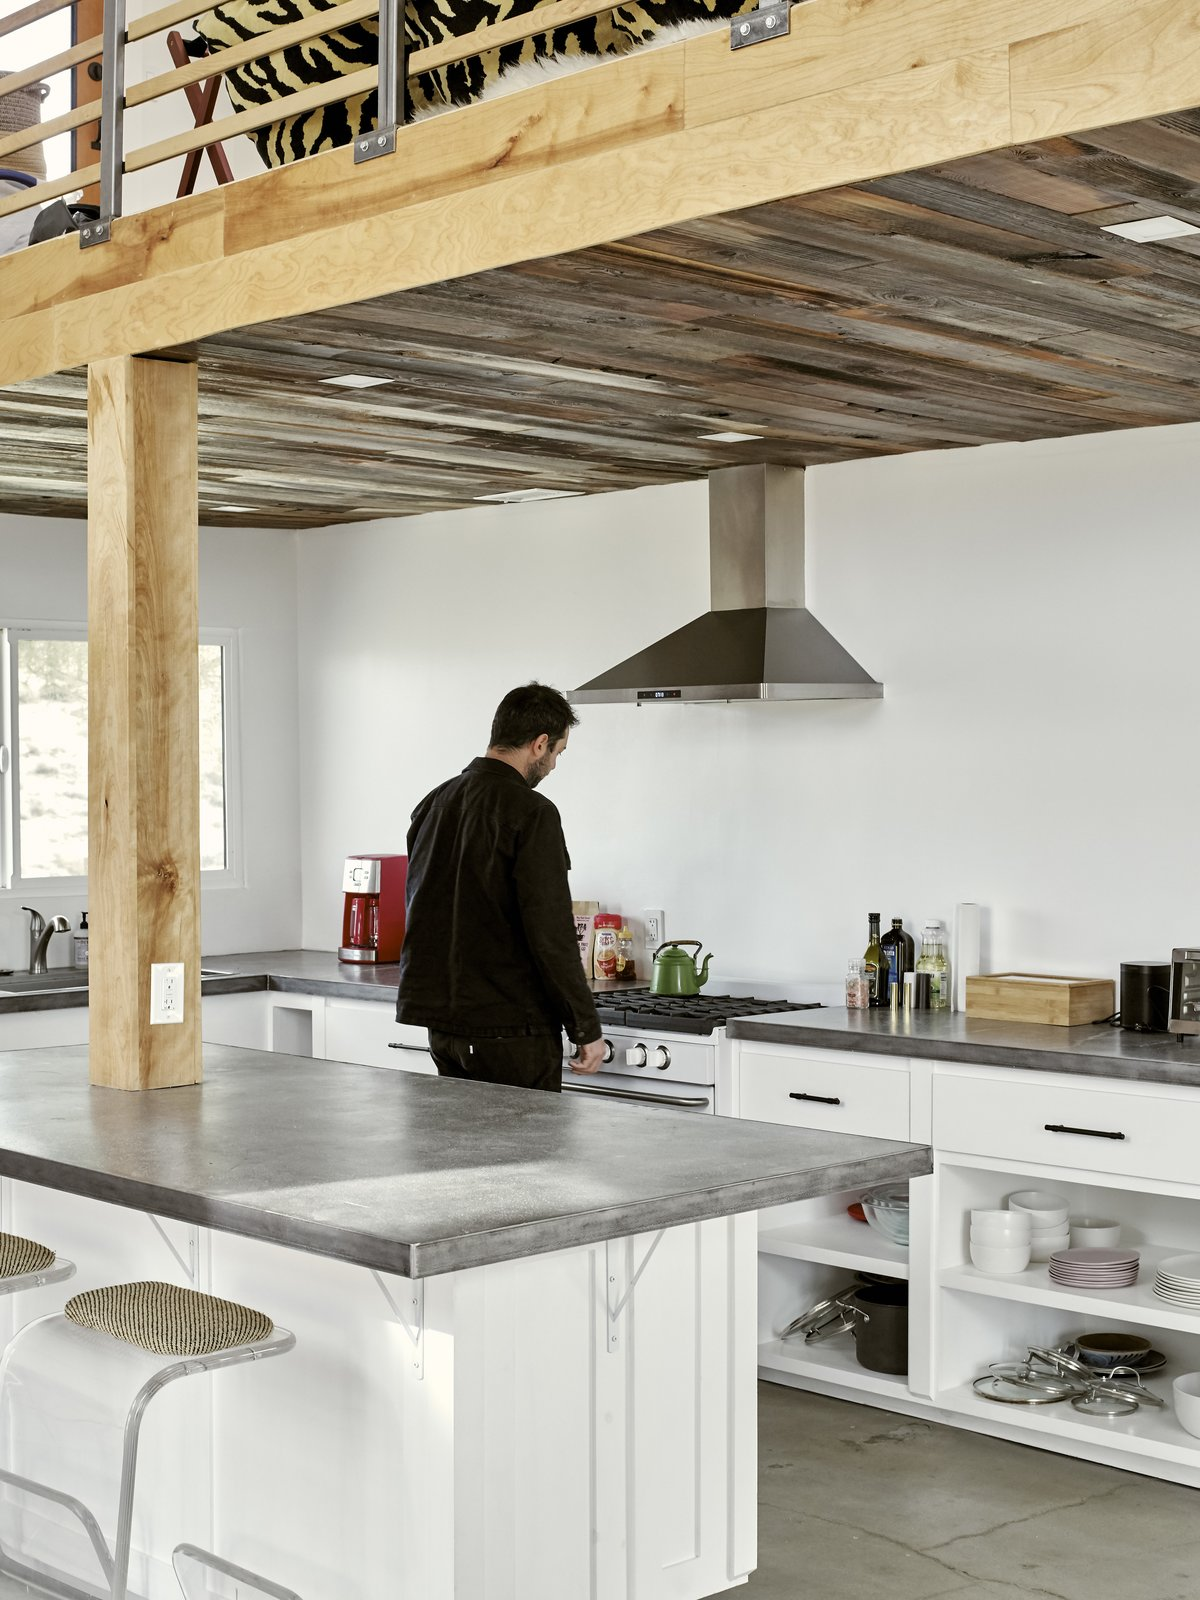 Kitchen, Concrete, Range Hood, Range, Concrete, and White The kitchen is outfitted with concrete counters and floors and off-grid-friendly appliances that use less energy. The ceiling is paneled in reclaimed barn wood.  Best Kitchen Concrete Concrete Photos from A Tech Entrepreneur Rehabs an Off-Grid Dome Home in Joshua Tree